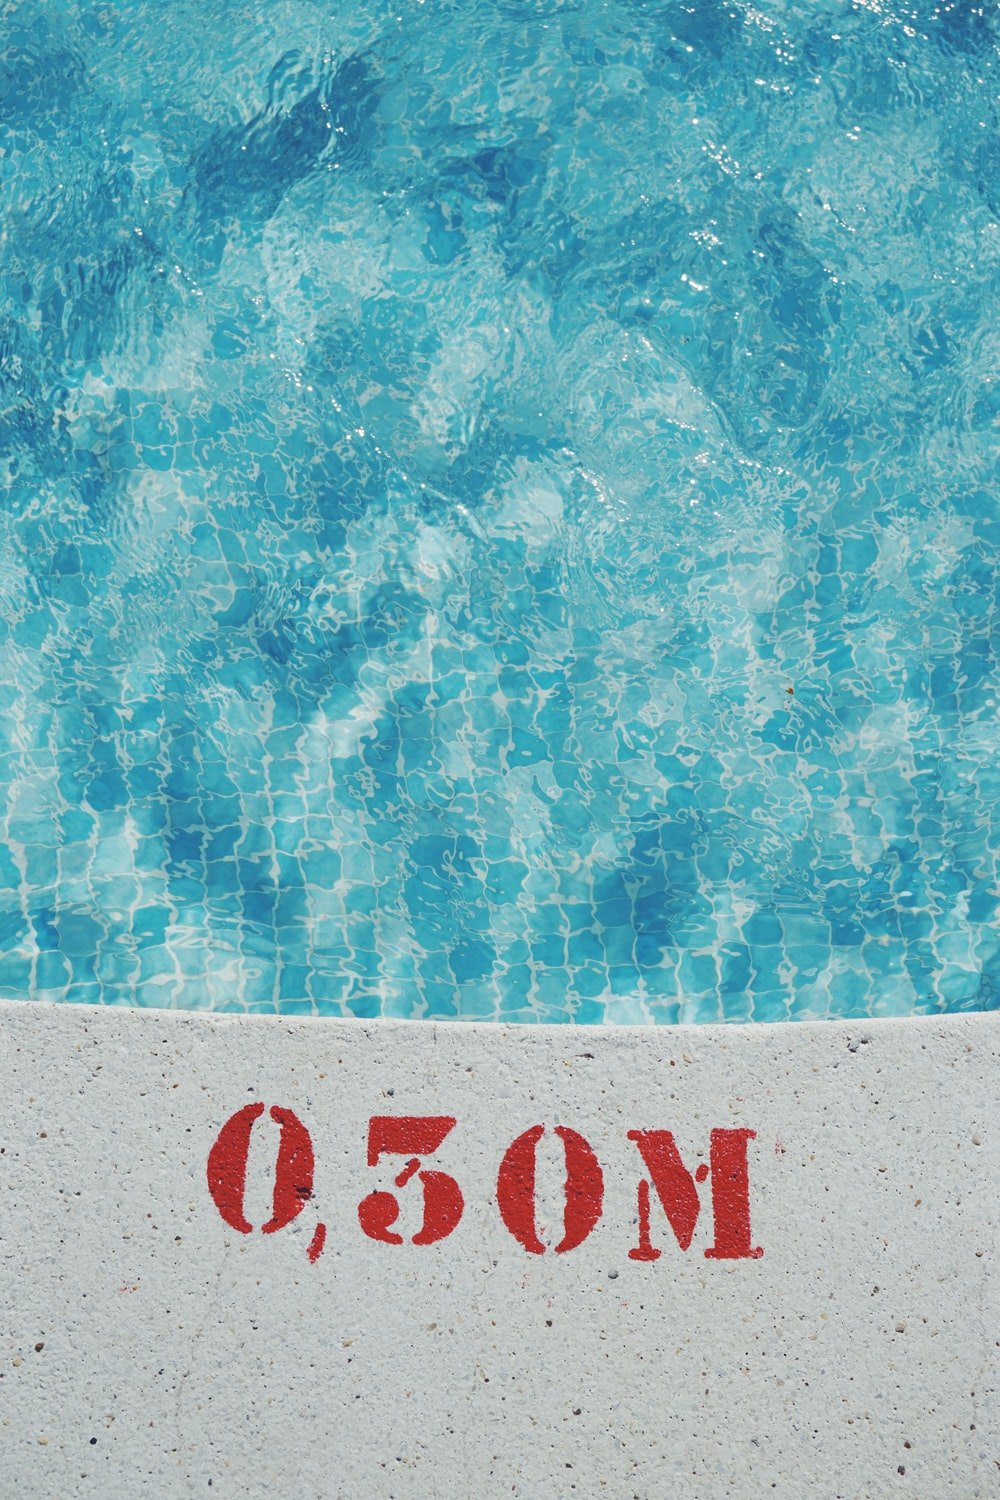 gray concrete pool at 0,30 Meter